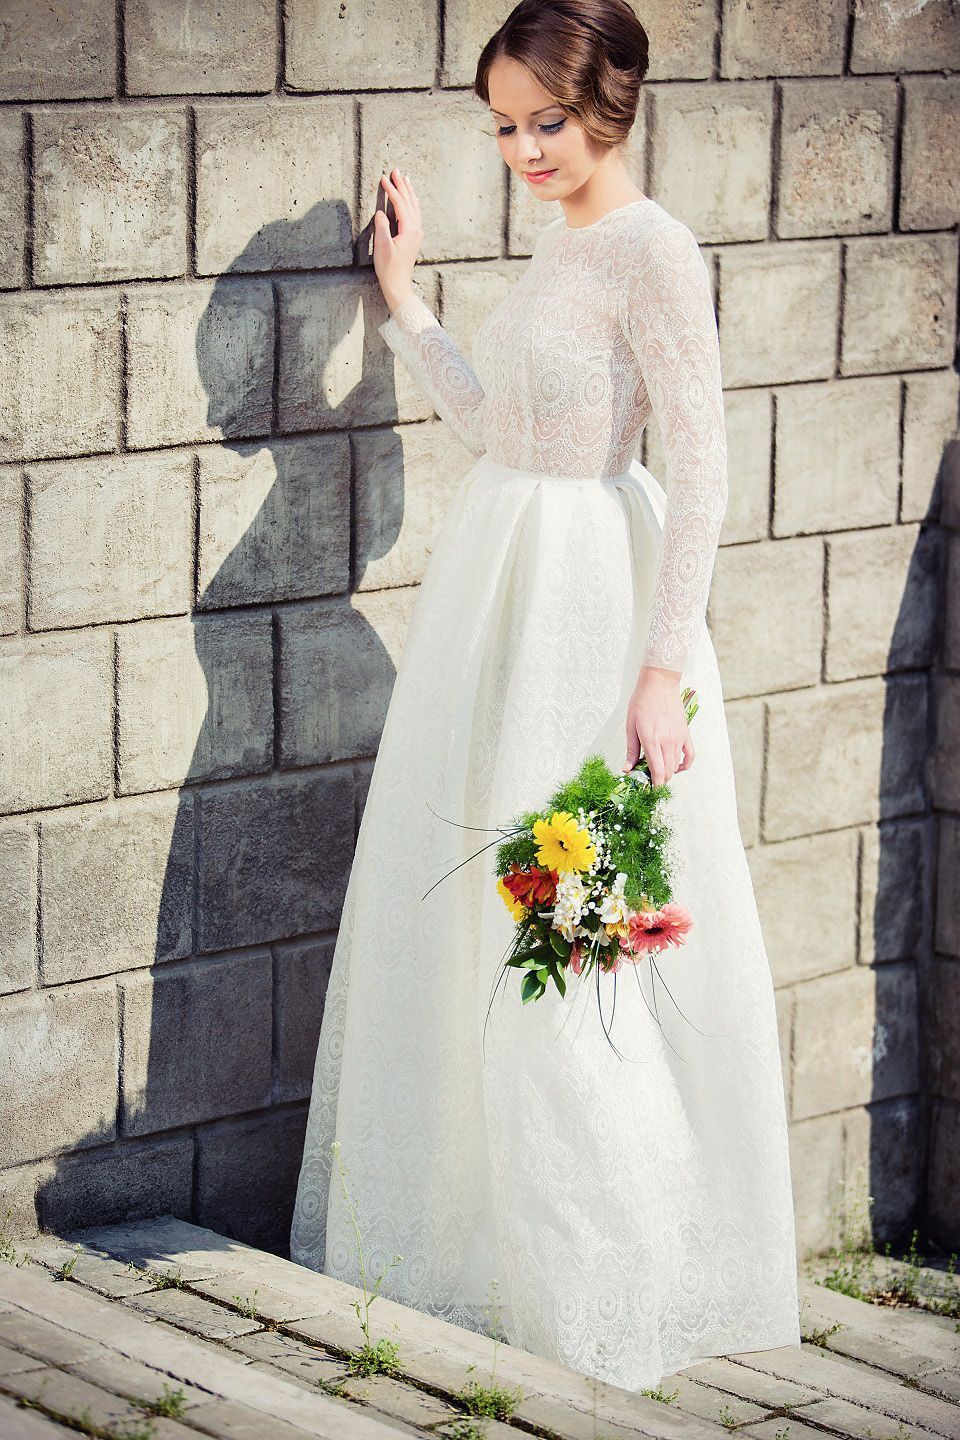 Welcome to uchelseau the elegant new bridal collection from